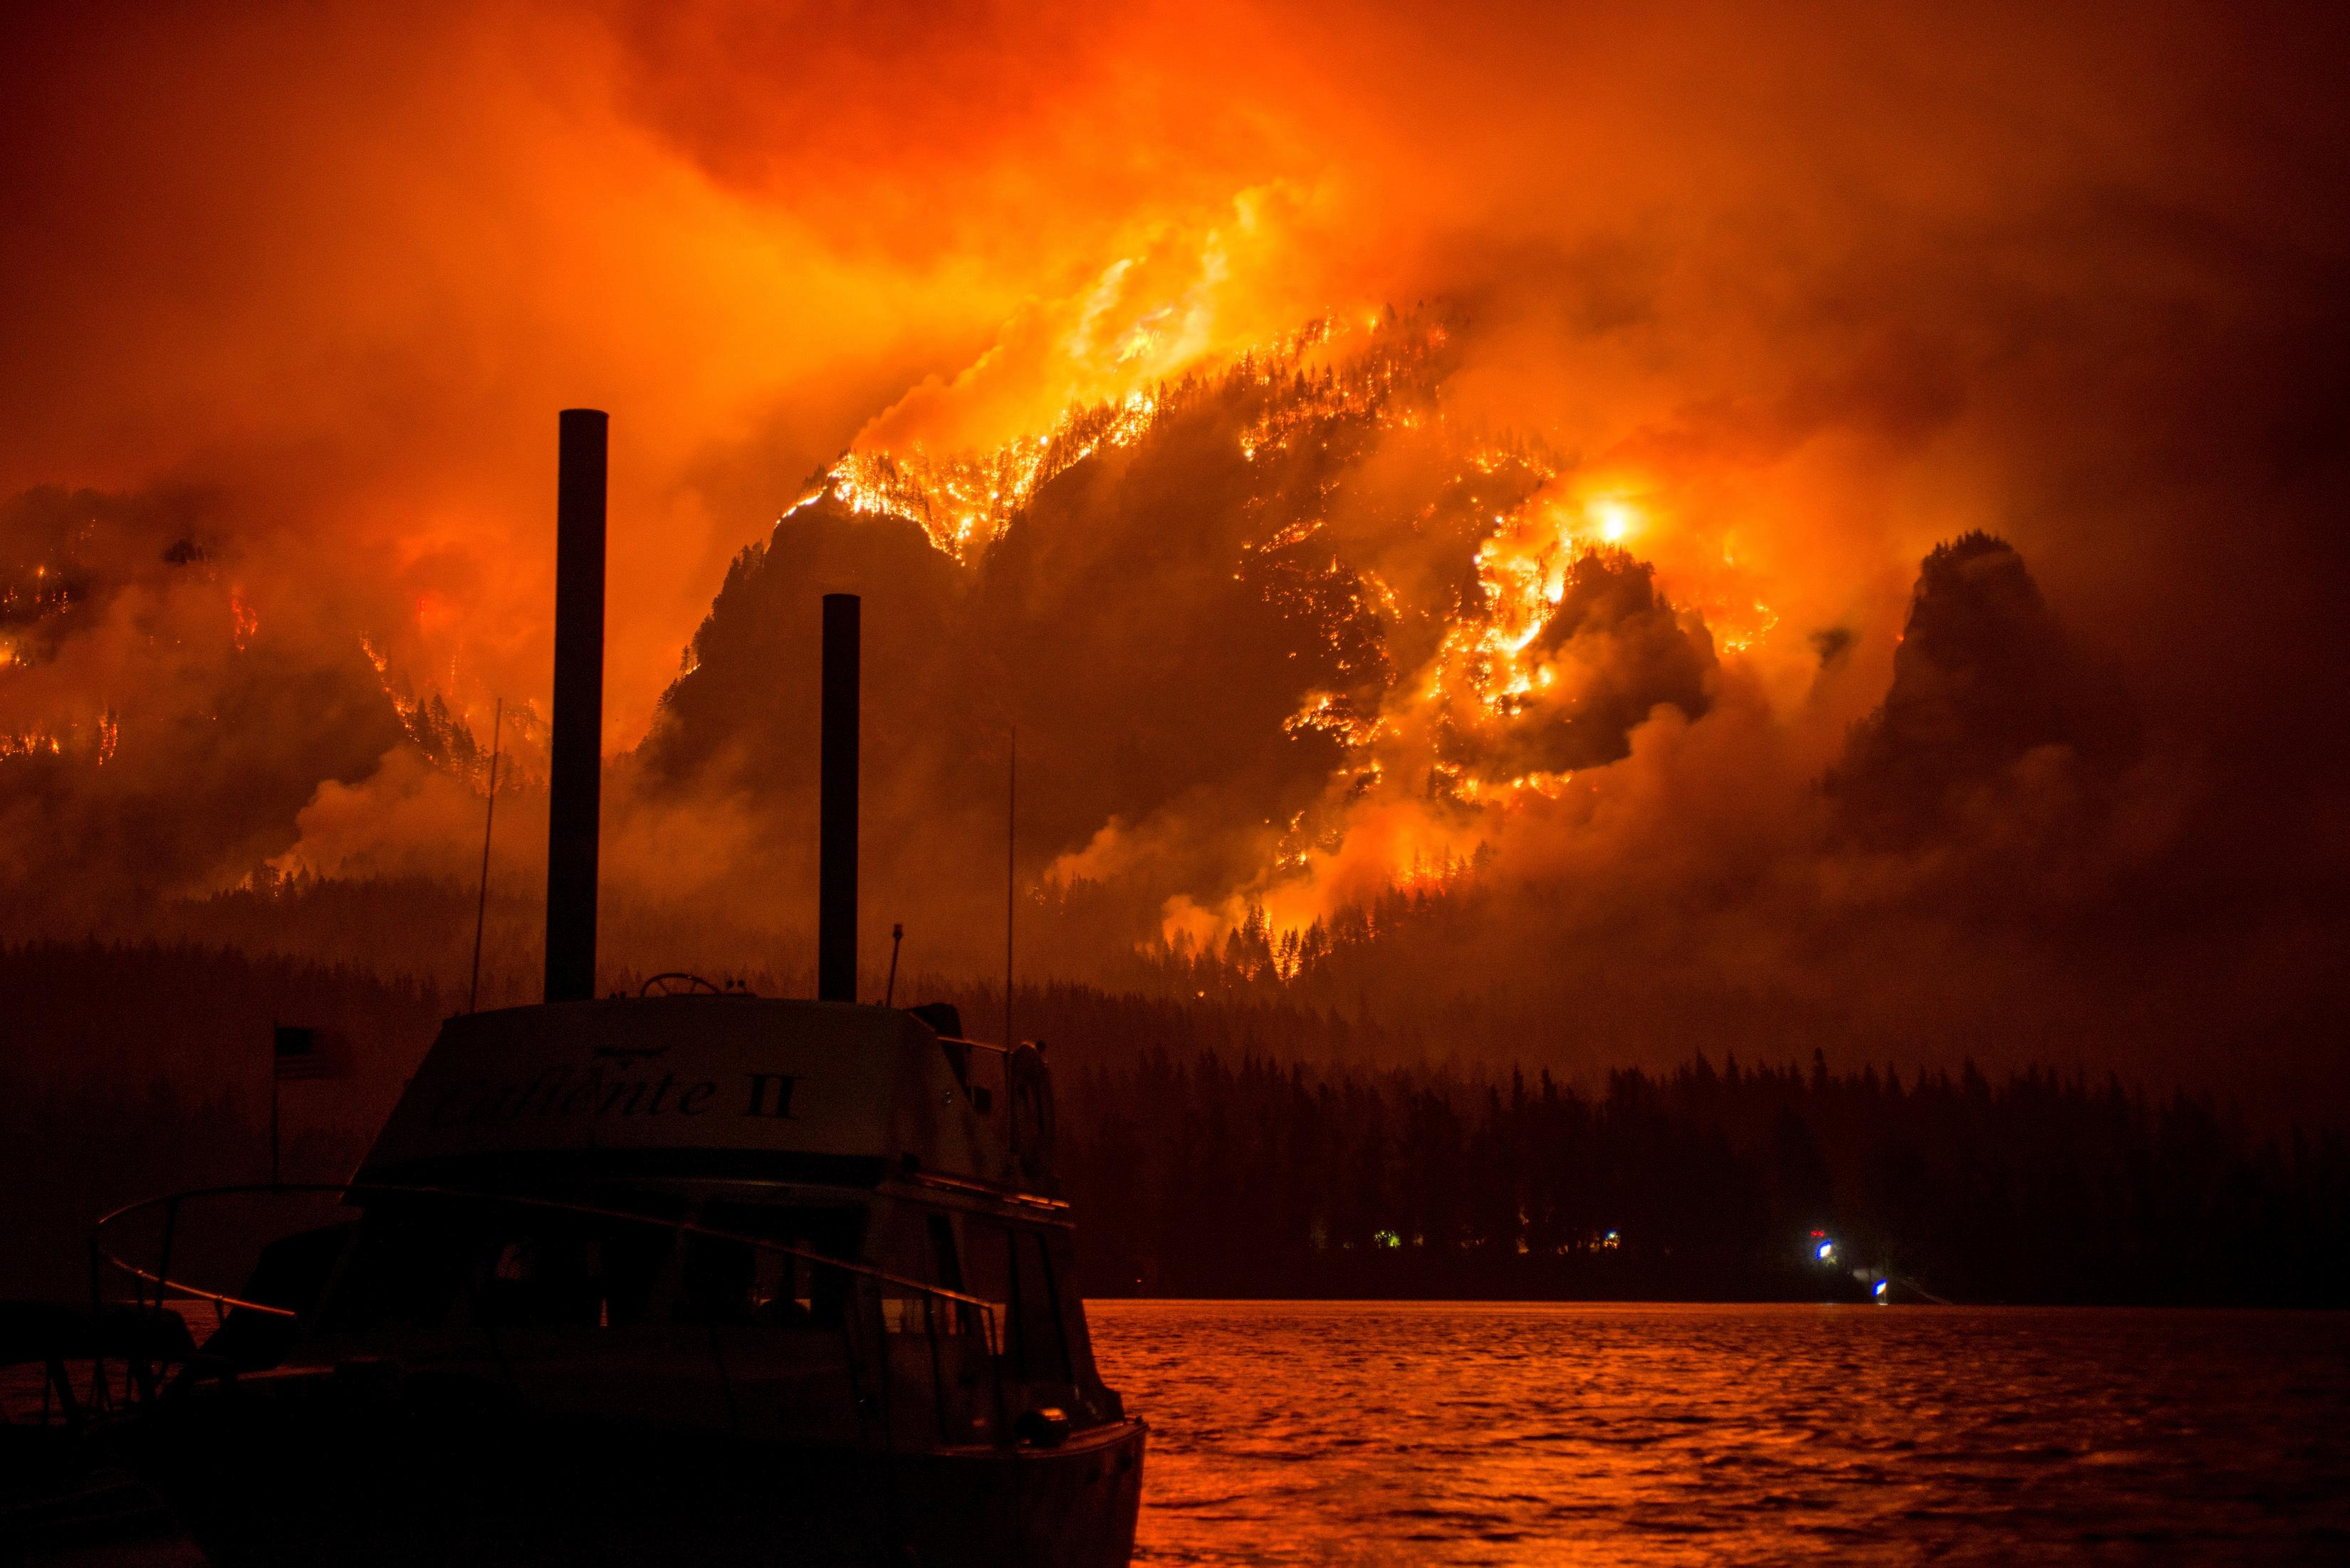 This Monday Sept. 4, 2017, photo provided by KATU-TV shows the Eagle Creek wildfire as seen from Stevenson Wash., across the Columbia River, burning in the Columbia River Gorge above Cascade Locks, Ore.